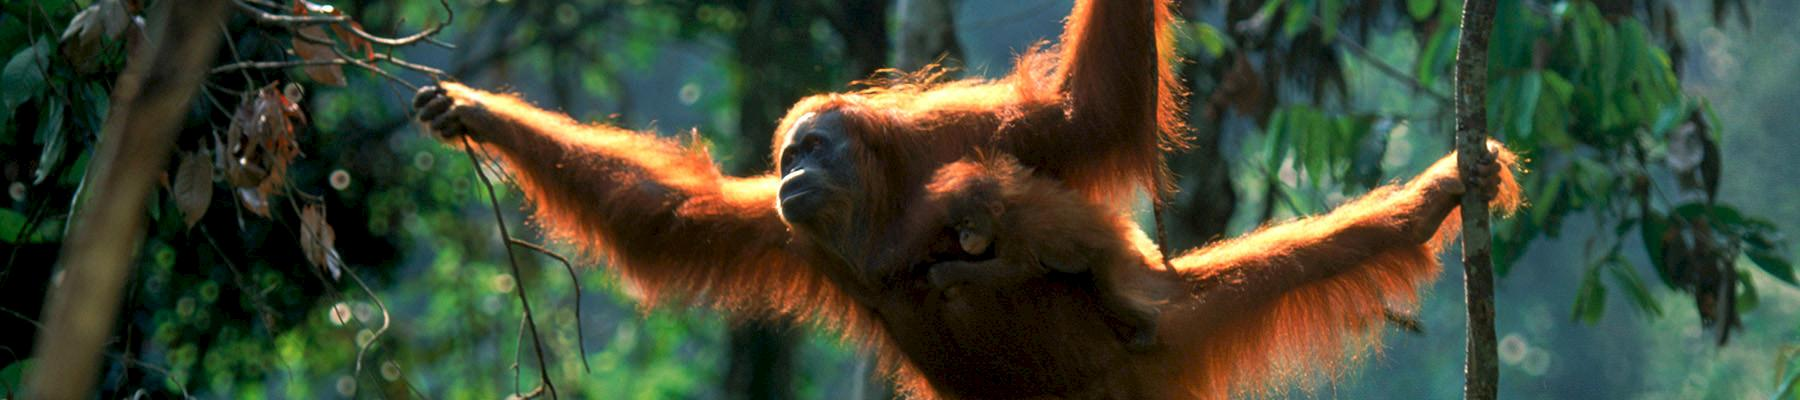 Sumatran Orang utan female swinging through the trees © naturepl.com / Anup Shah / WWF